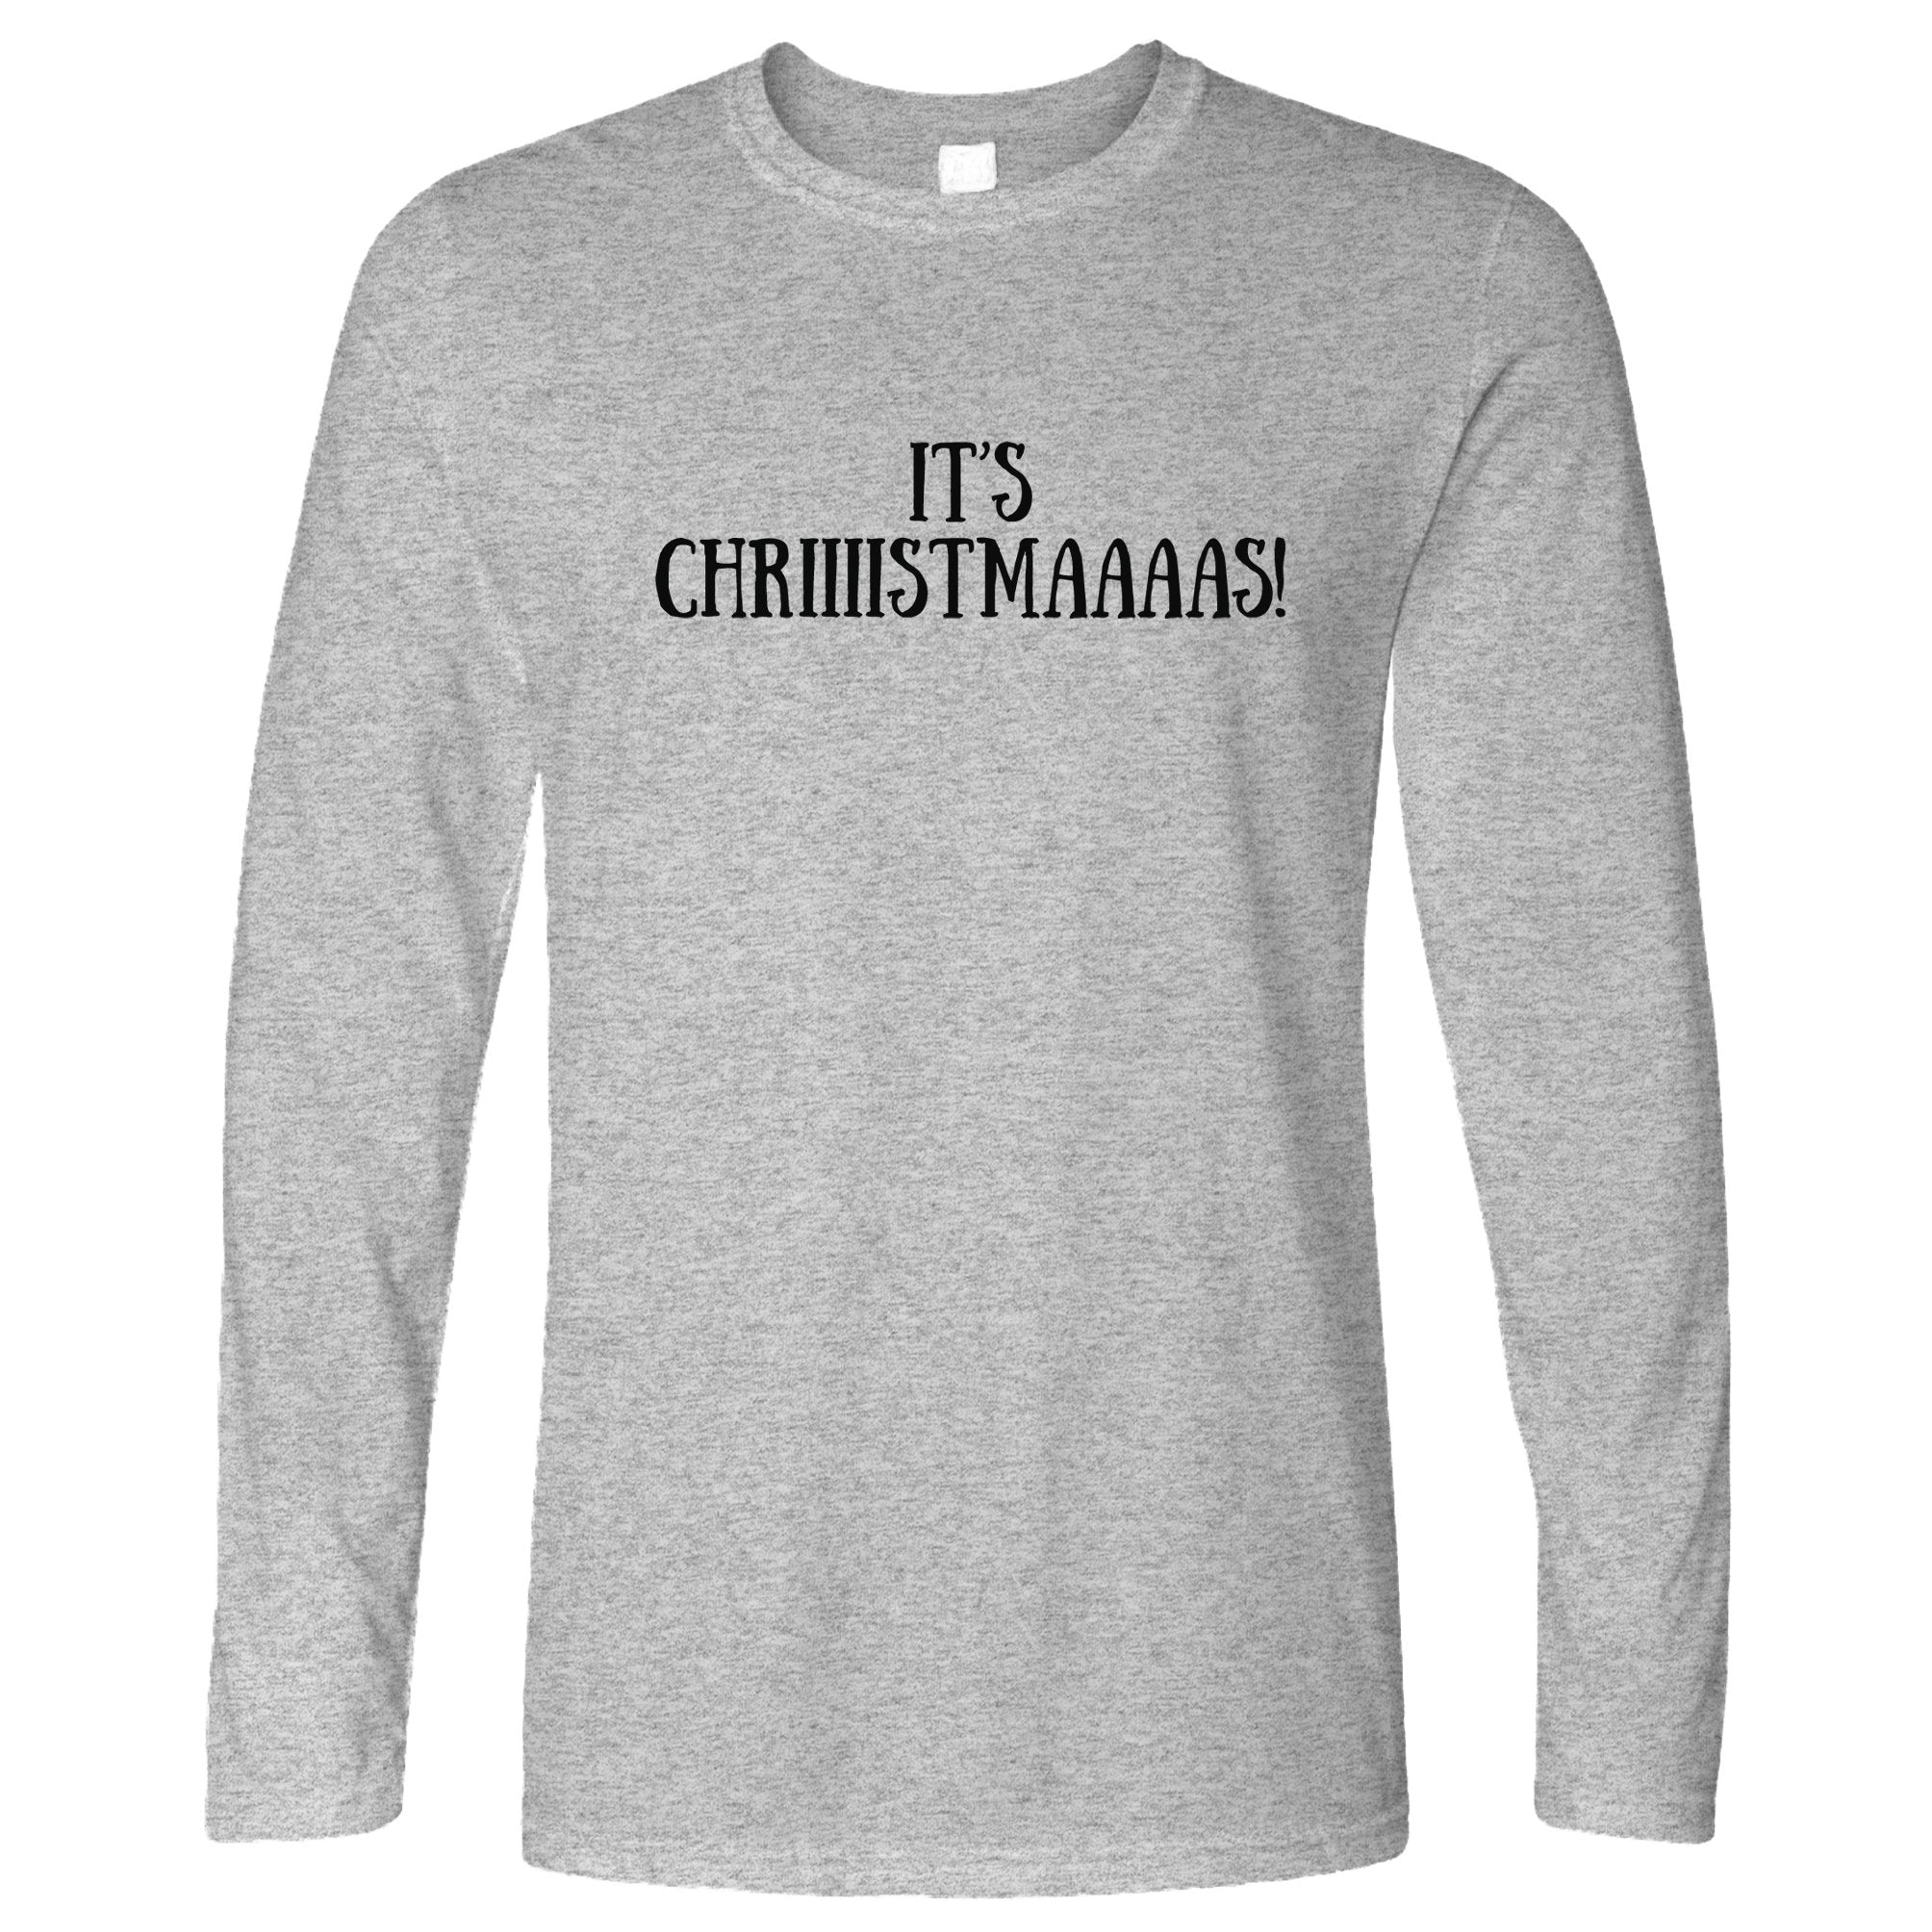 Novelty Xmas Long Sleeve It's Christmas! Festive Slogan